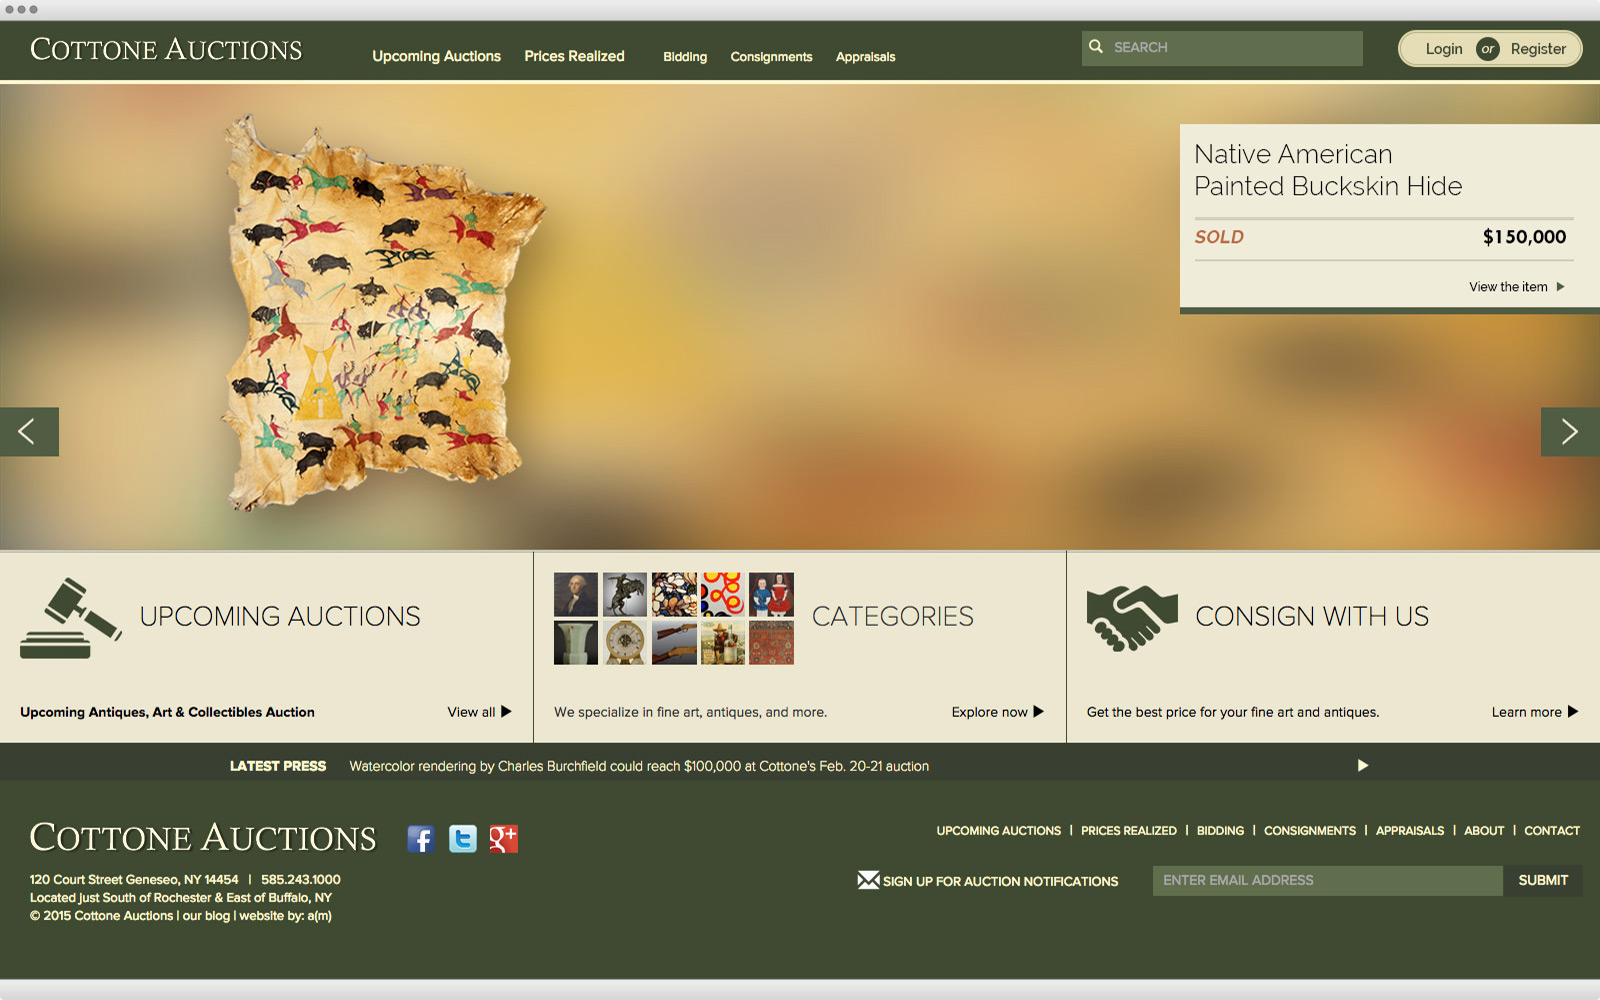 Cottone Auctions website design